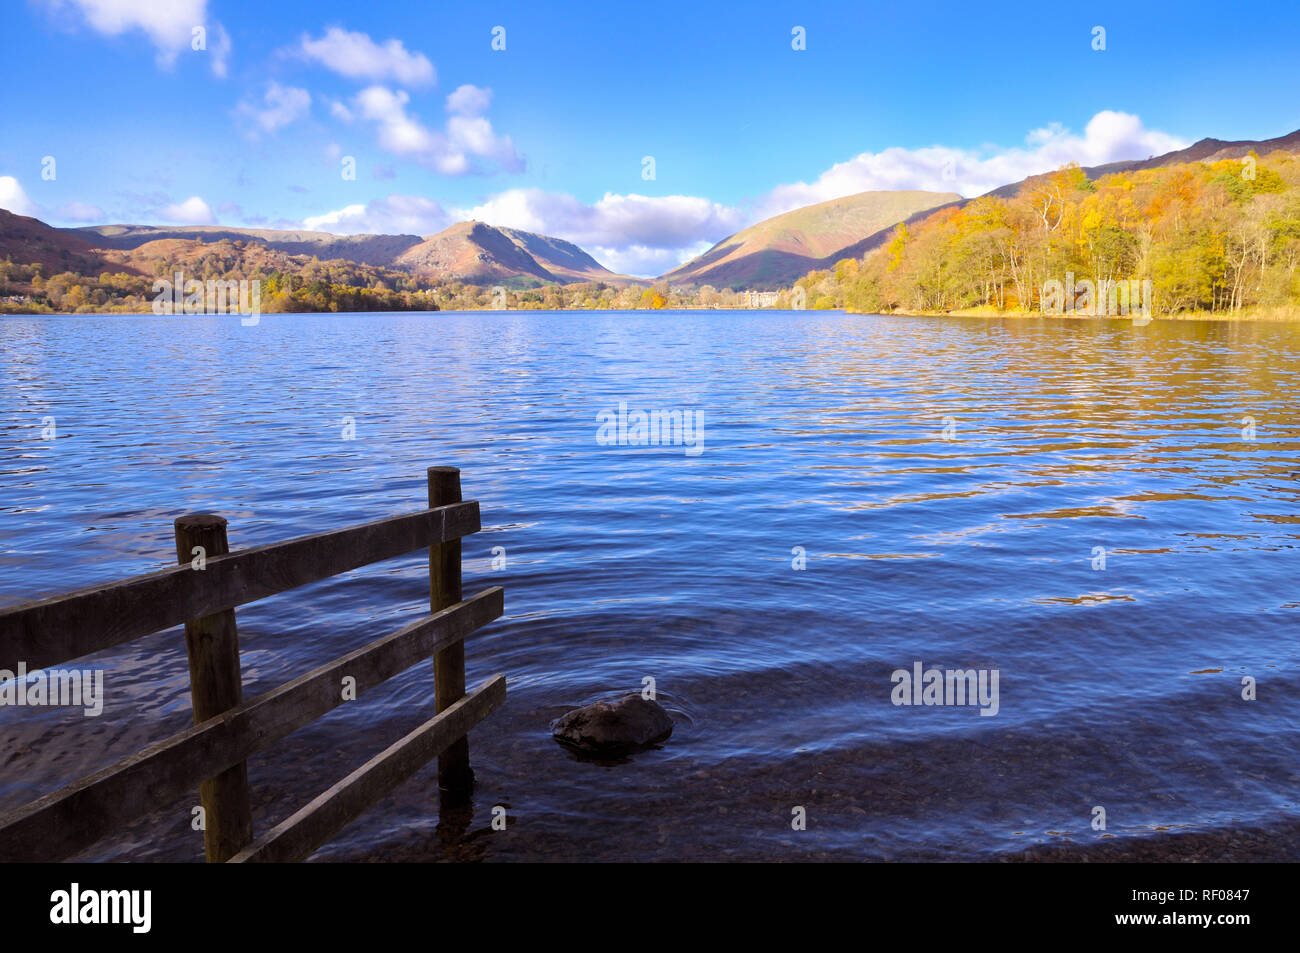 View from the shores of Grasmere, Lake District, England, UK - Stock Image